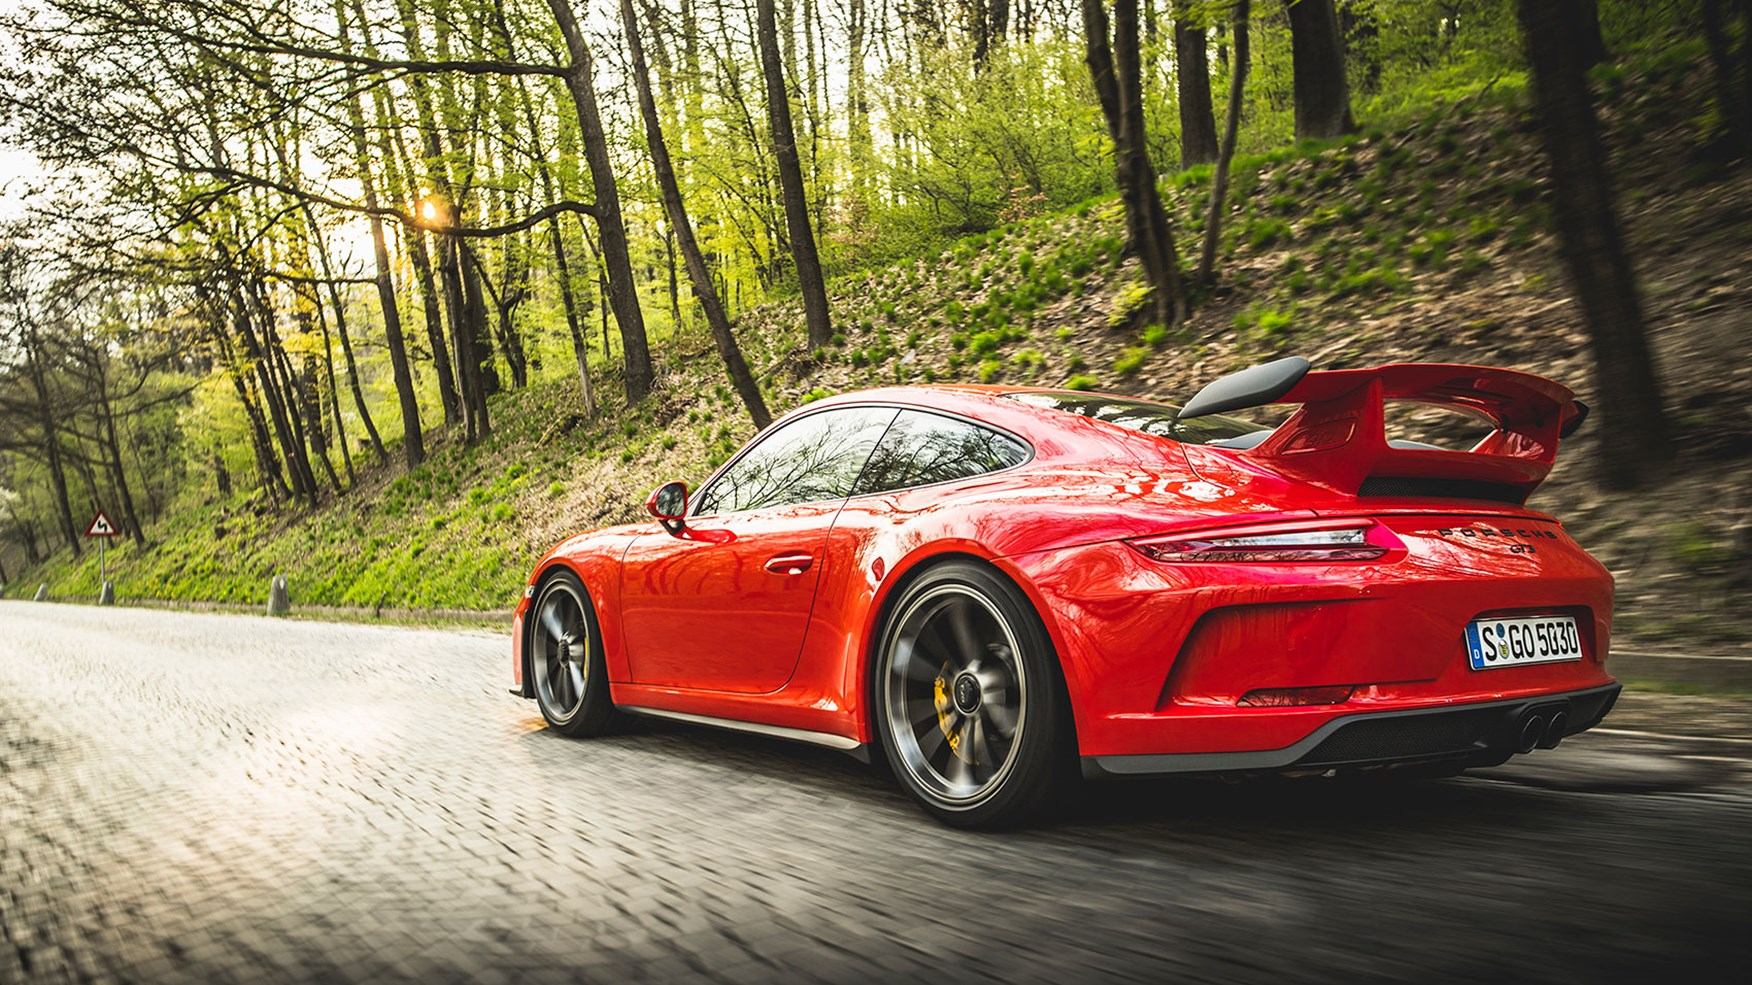 Porsche 911 Gt3 Review The Most Involving 911 Ever Goes